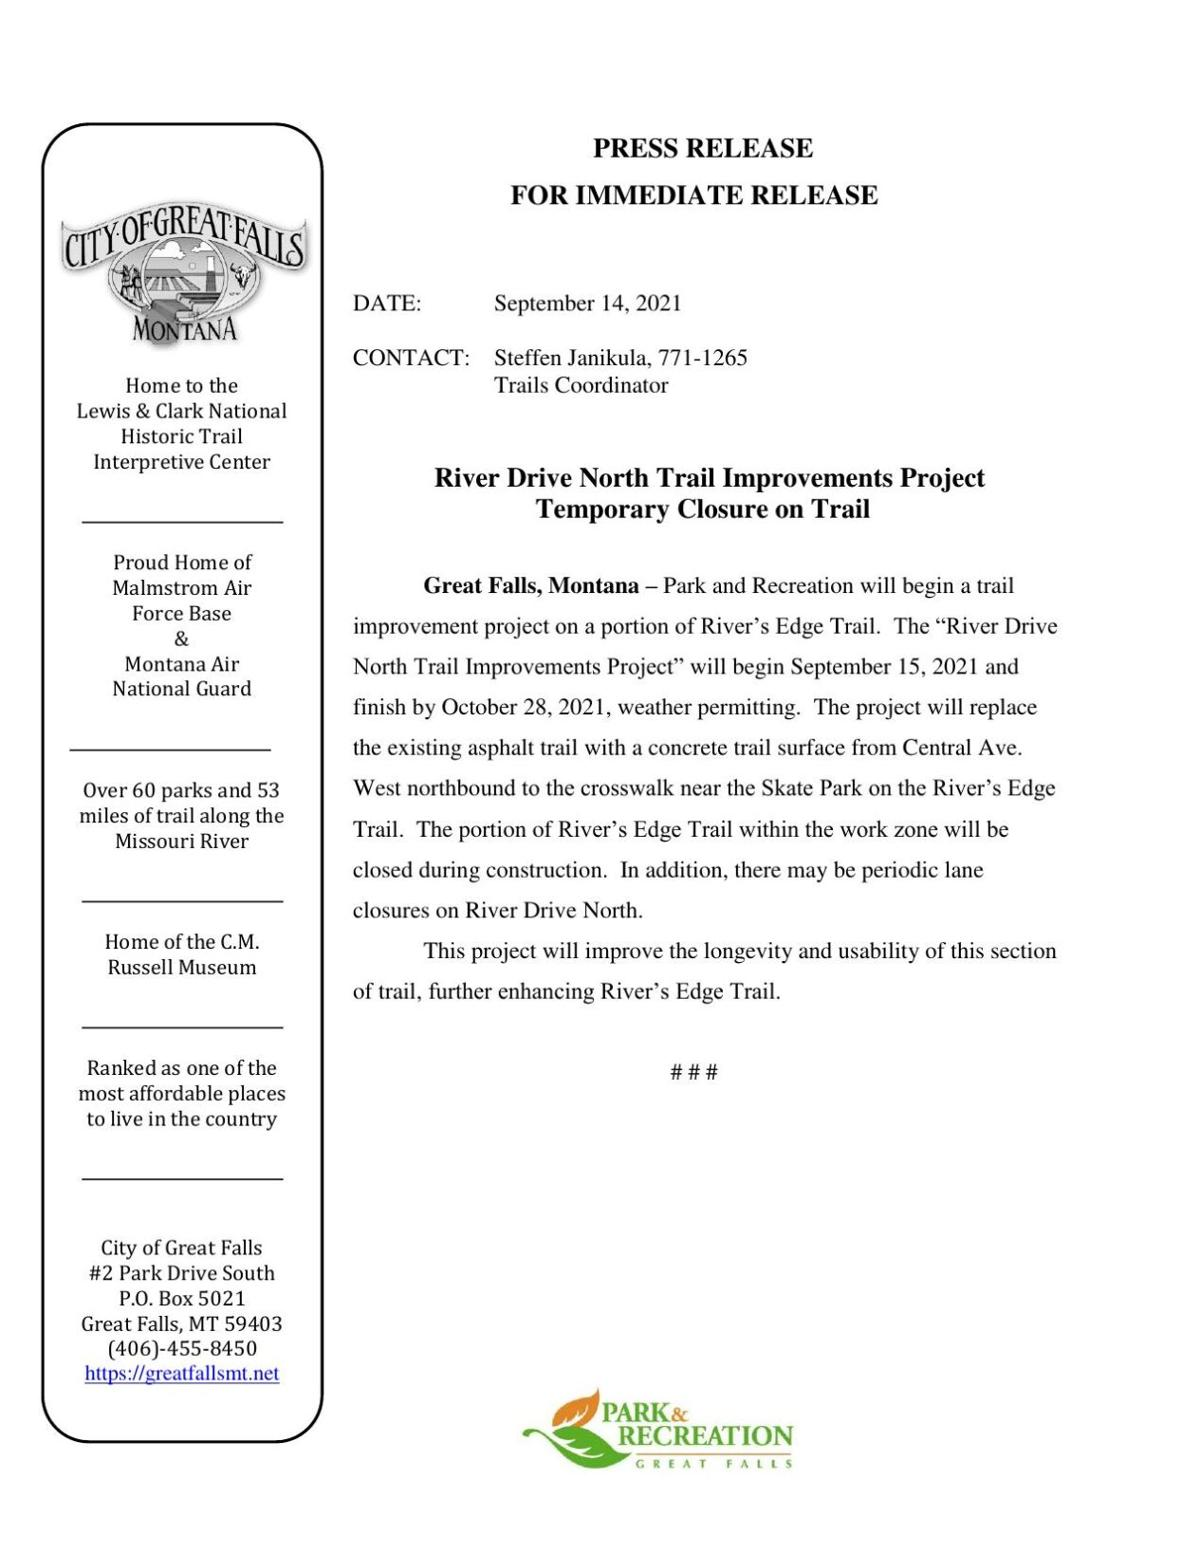 River Drive North Trail Improvements Project Temporary Closure on Trail